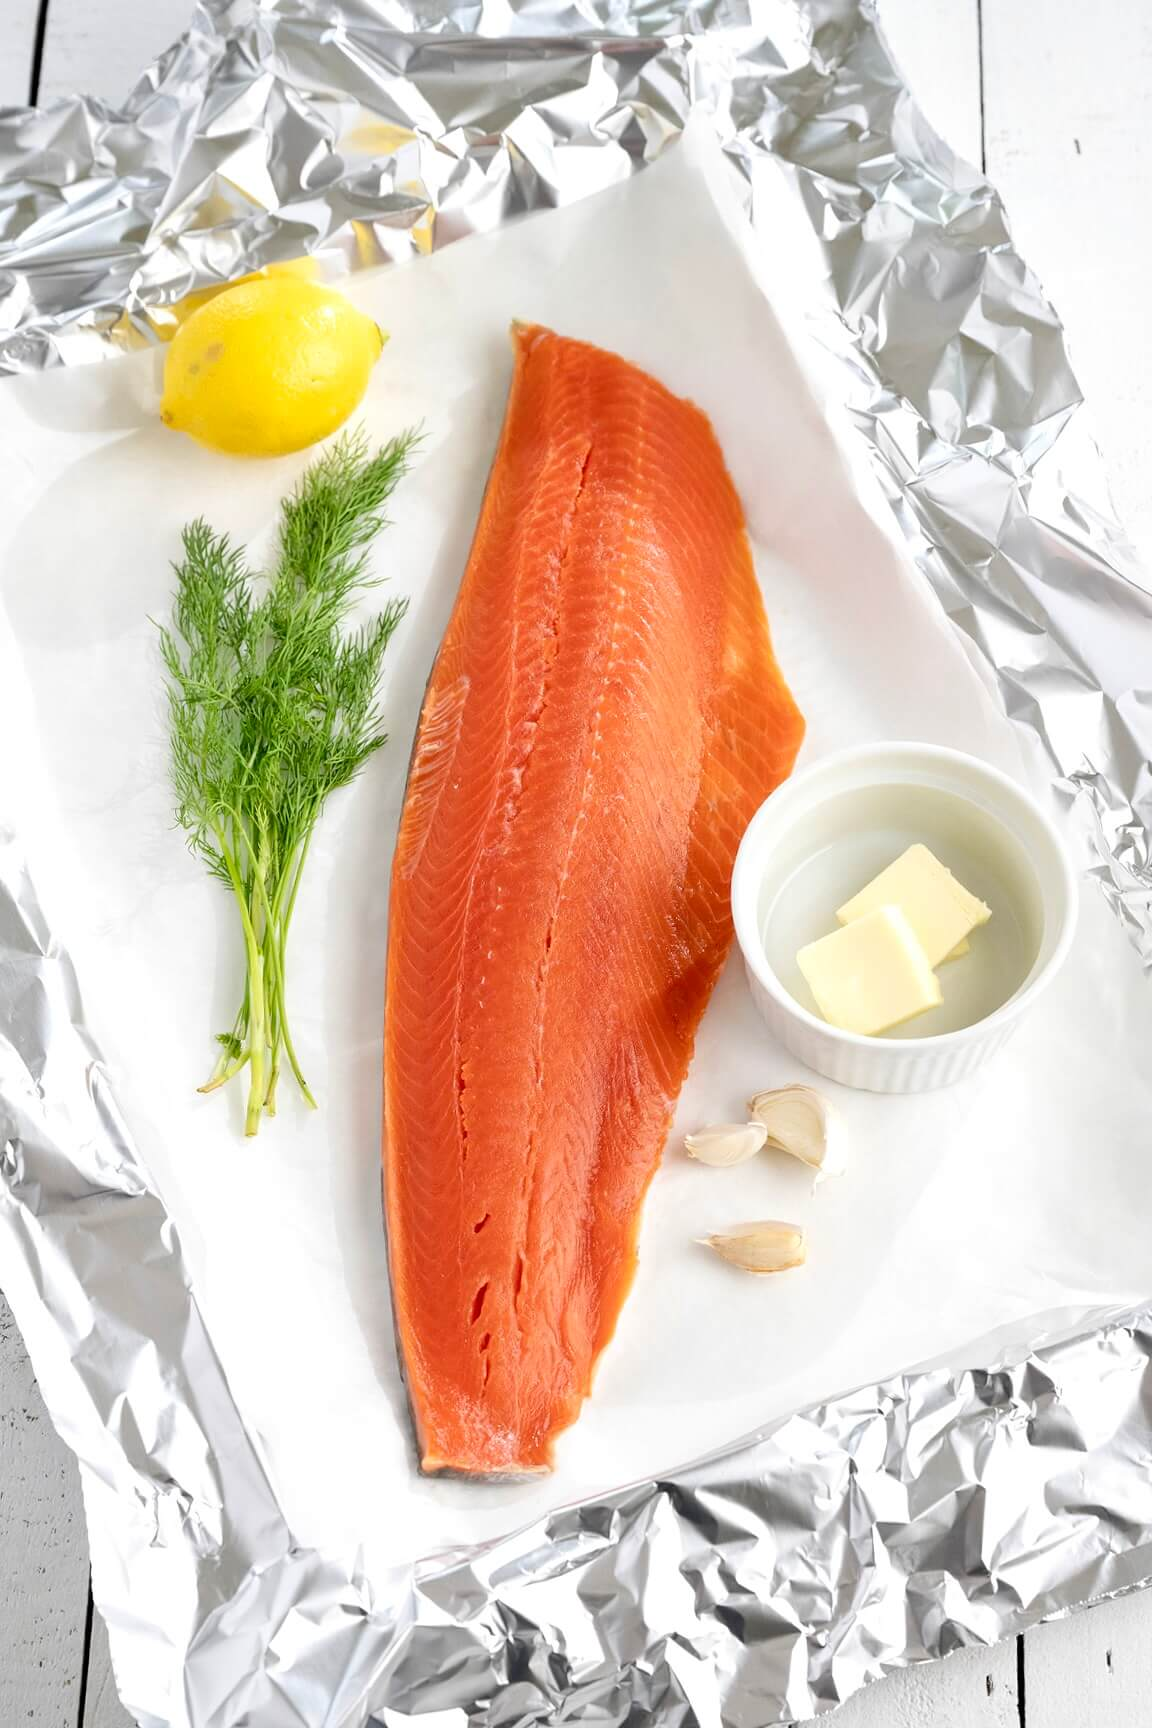 A short list of everyday ingredients makes this easy salmon recipe shine. The simple foil packet locks in flavor and moisture--and makes cleanup a snap!